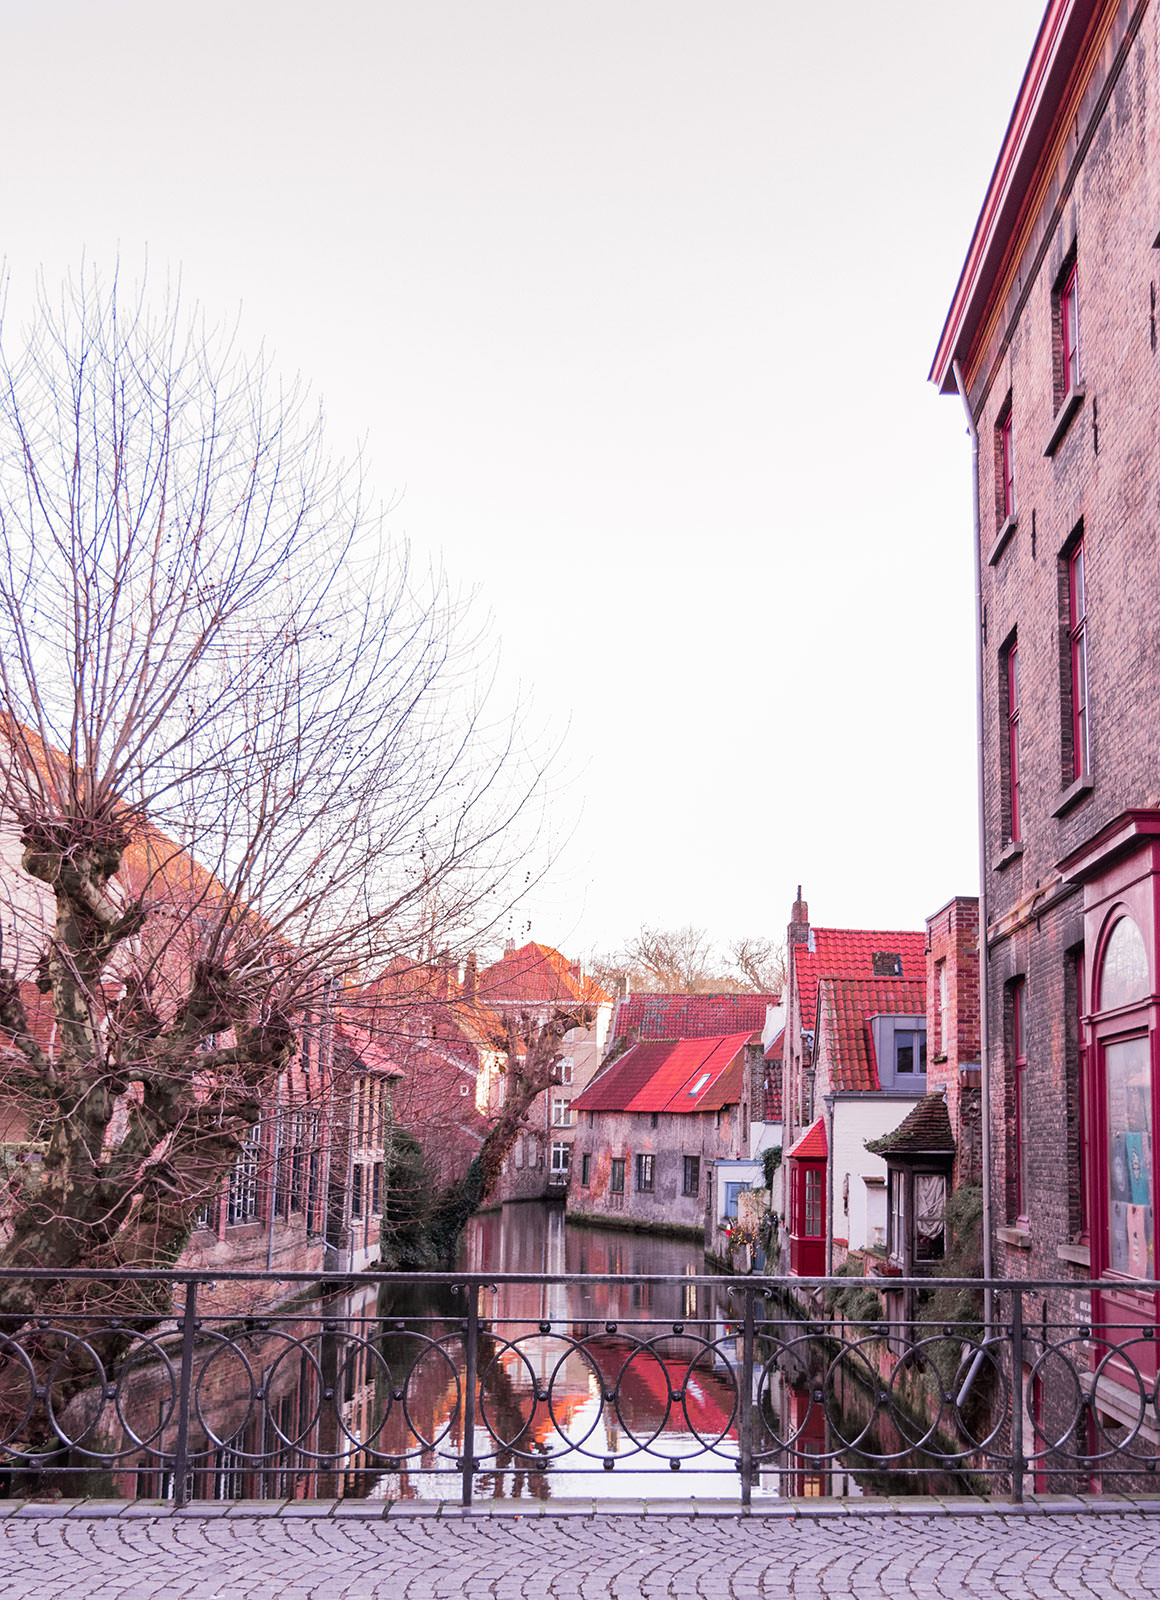 One day wandering the fairy tale city Bruges, Belgium